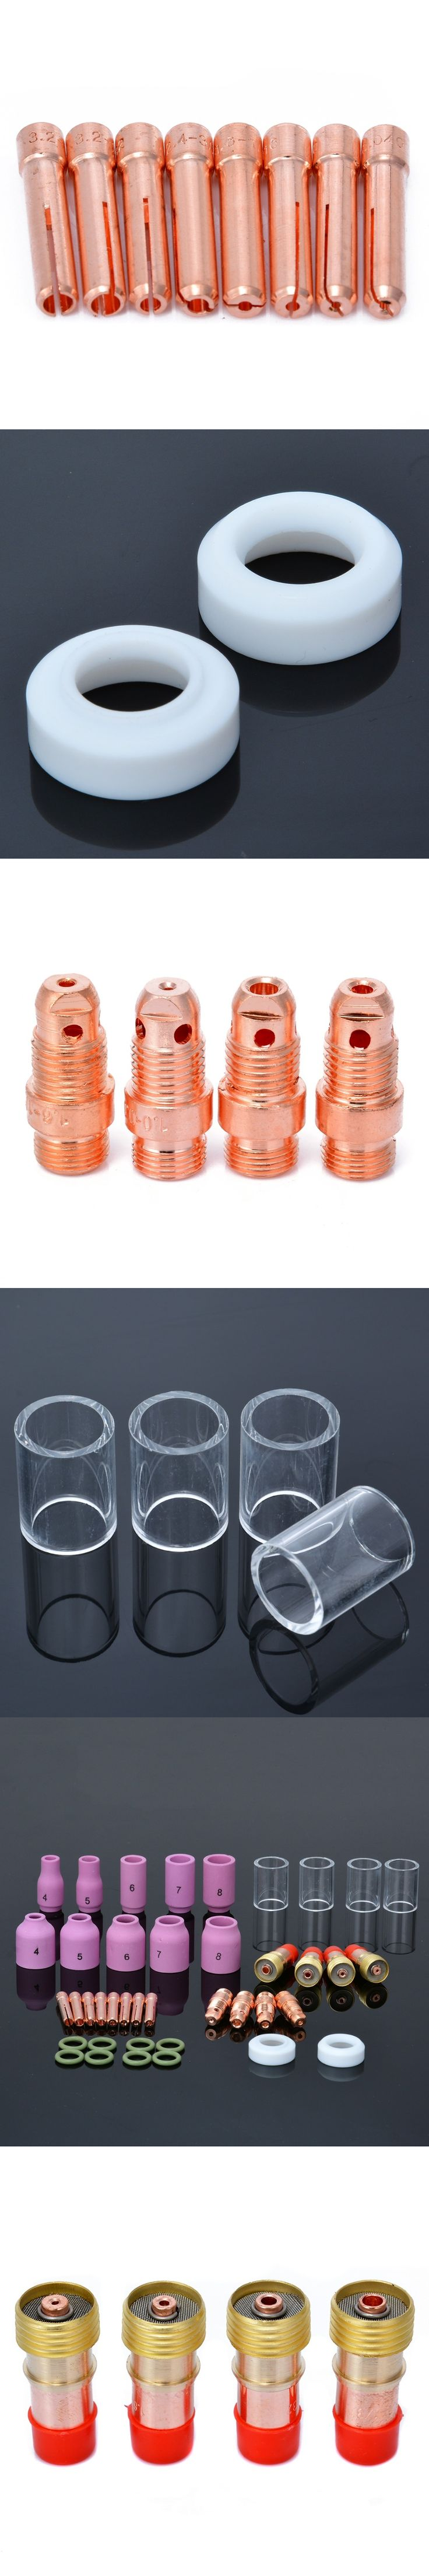 40pcs Mayitr #10 Pyrex Glass Cup + Stubby Gas Lens Welding Torch Kit Set For Tig WP-17/18/26